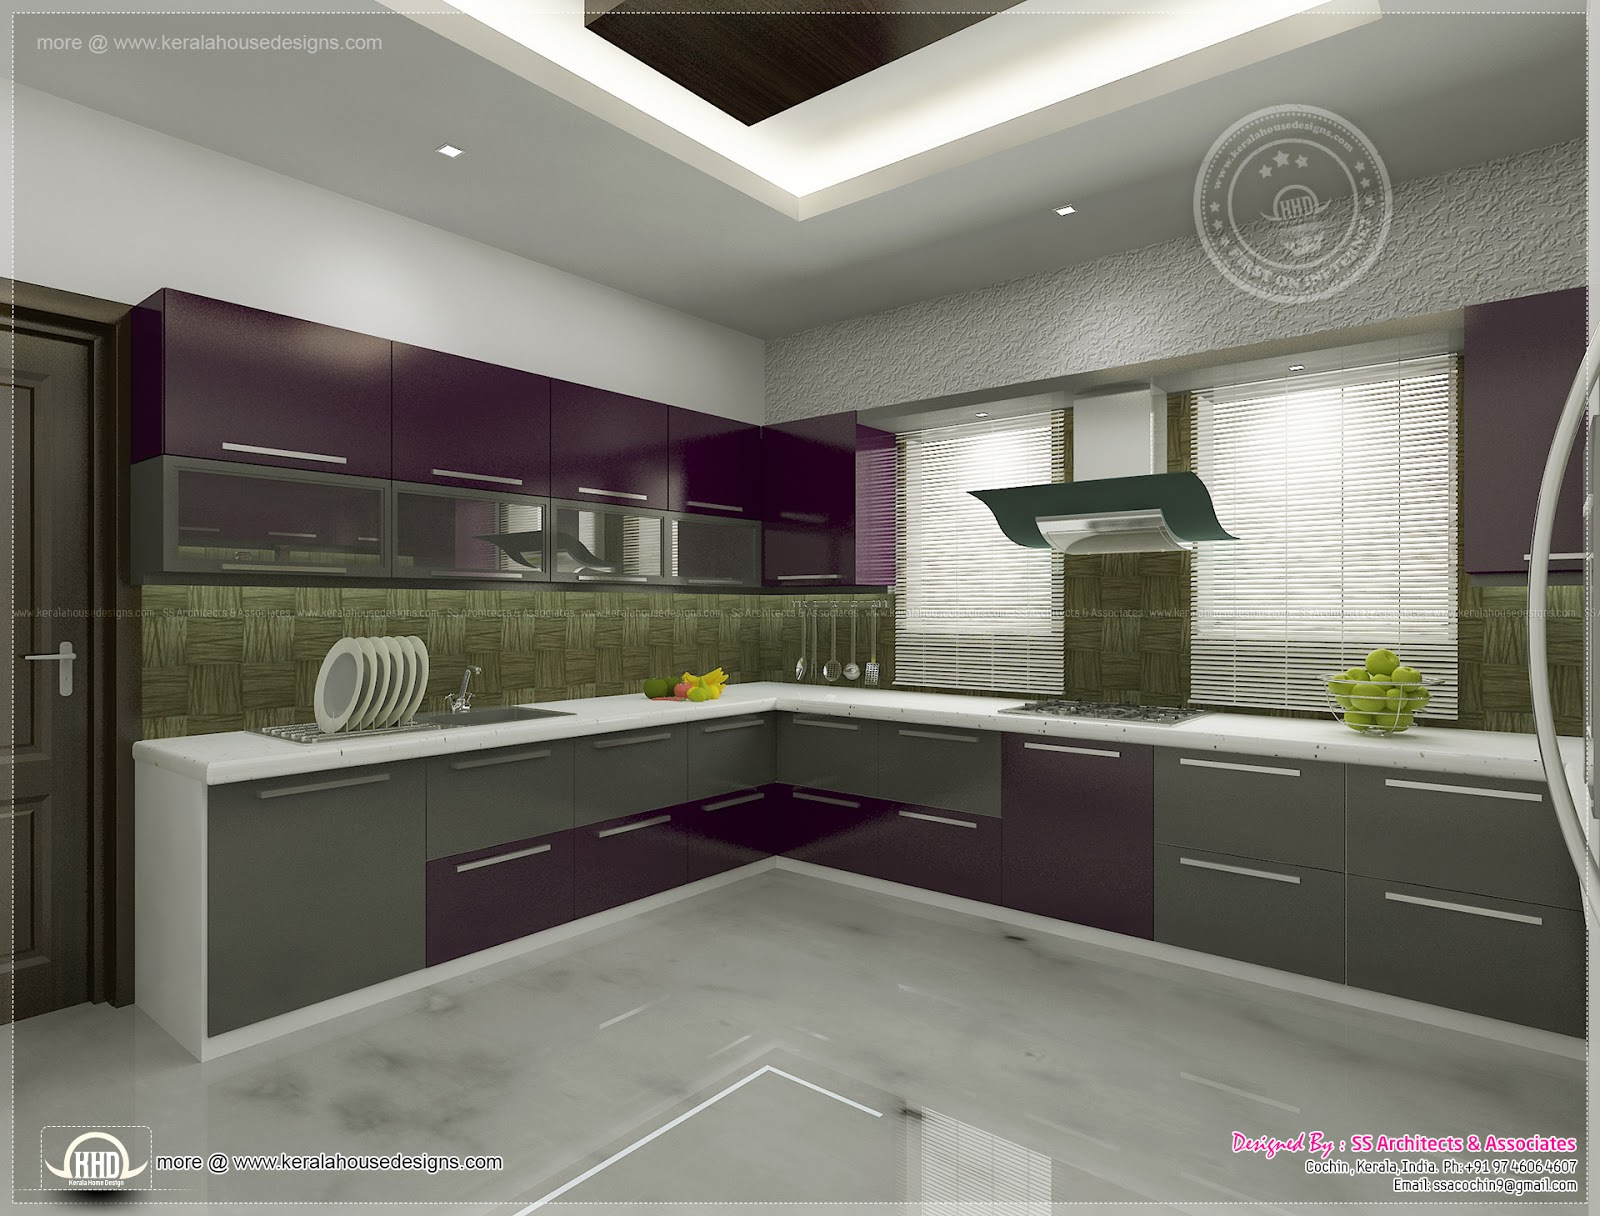 Kitchen interior views by ss architects cochin kerala for Interior designs of a house